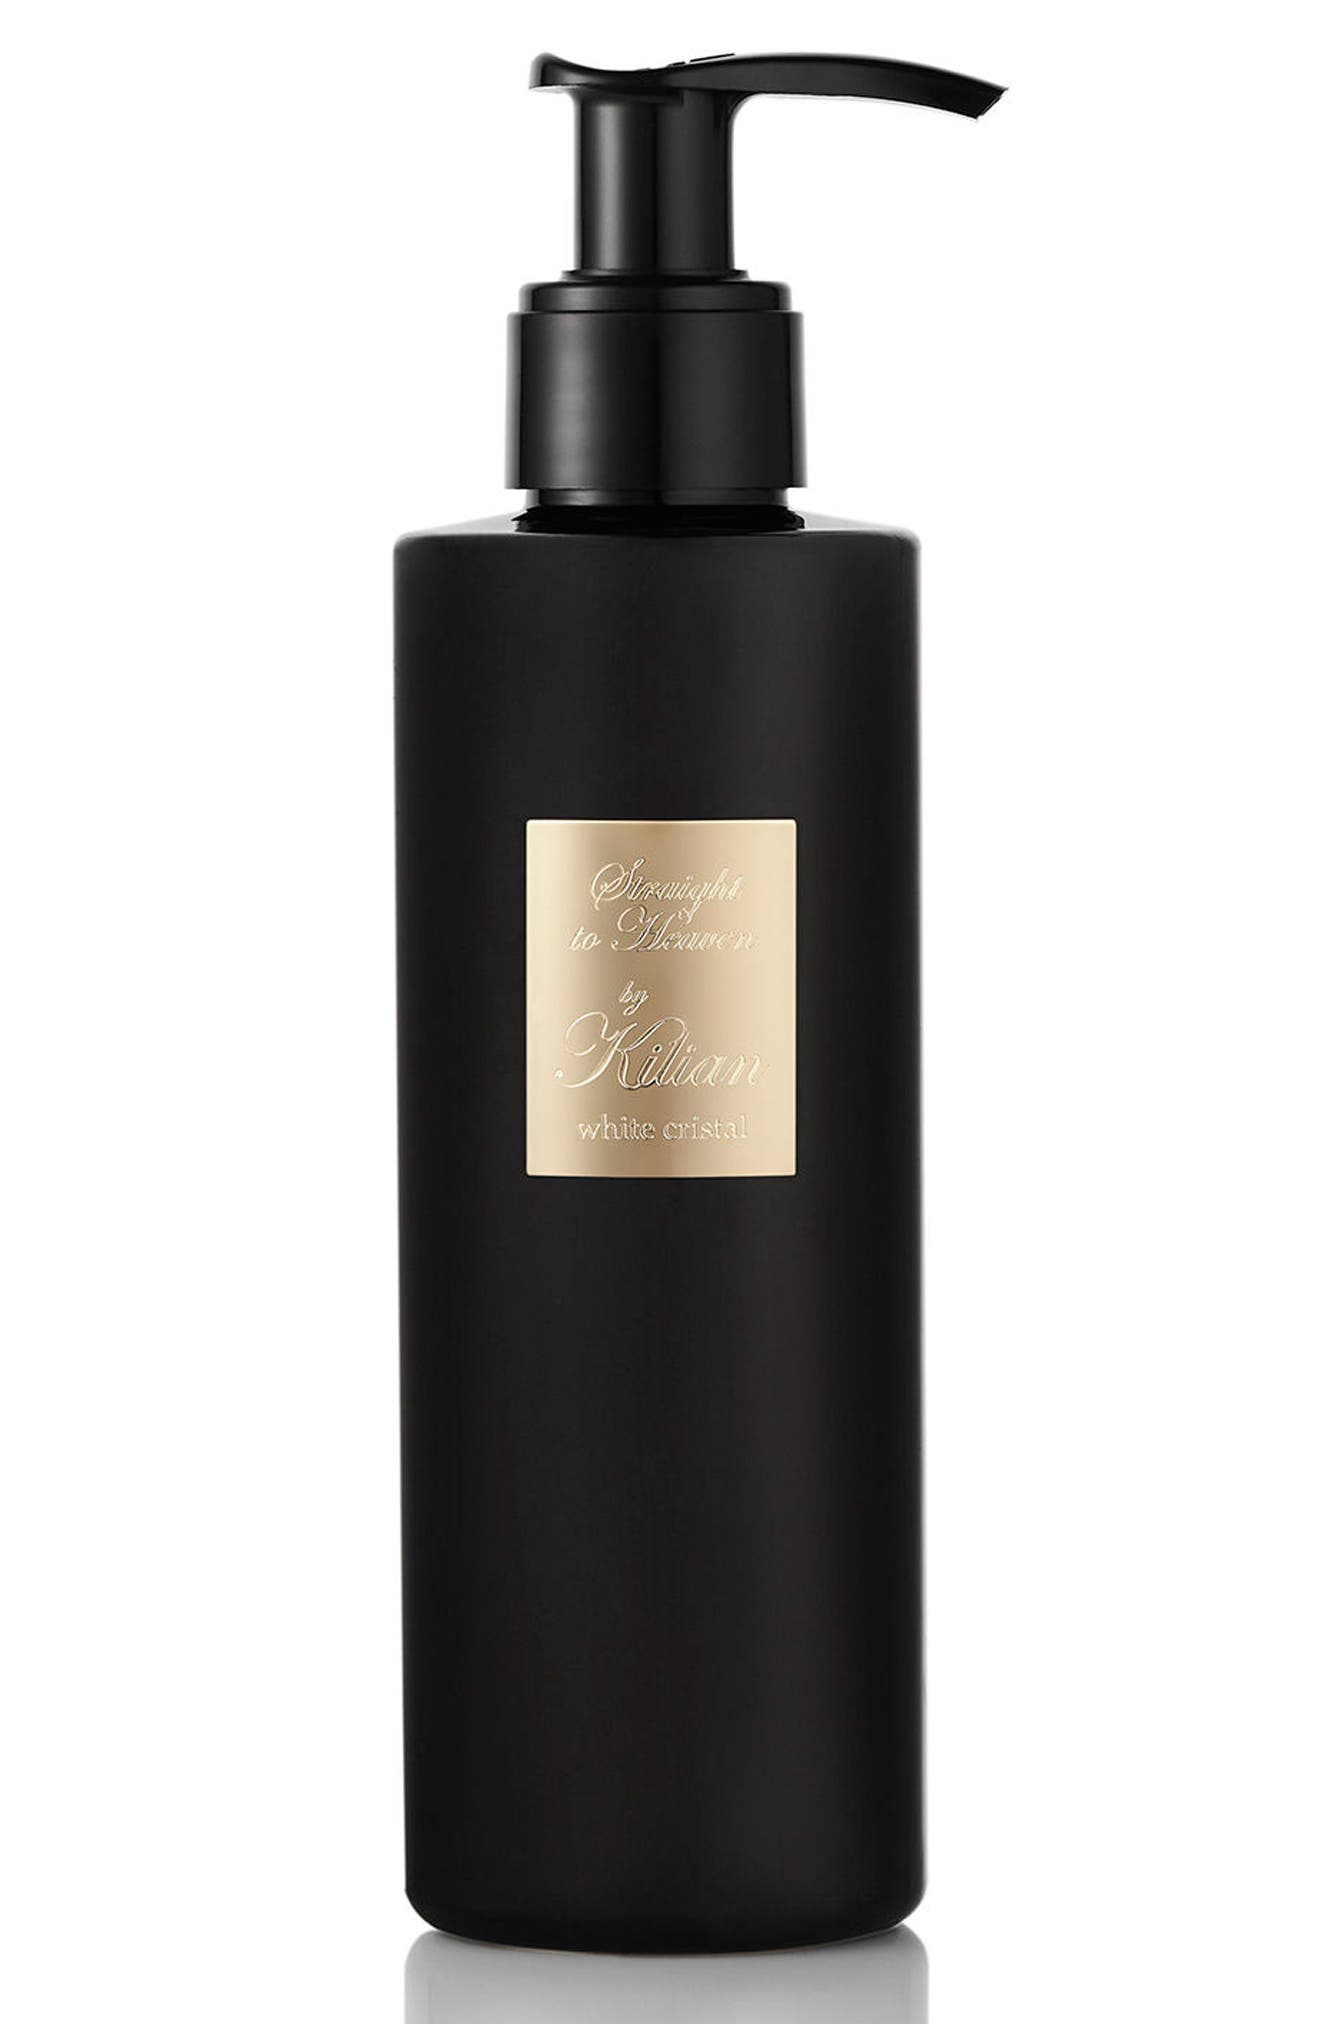 By Kilian Straight to Heaven, white cristal Body Lotion Refill